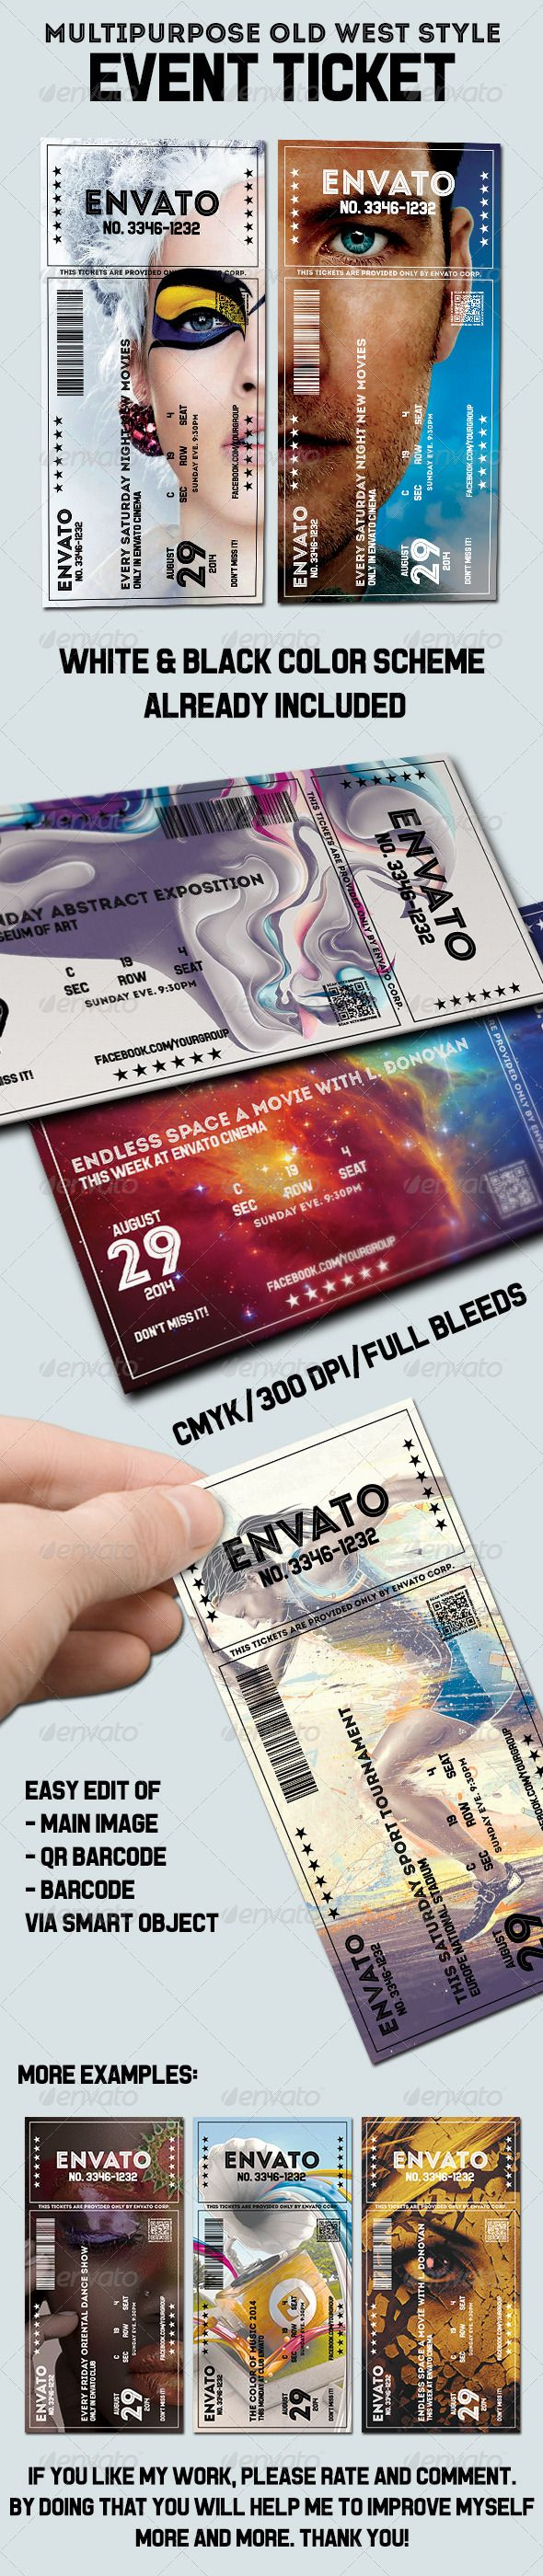 Concert Ticket Template Free Download Magnificent 19 Best Voucher Images On Pinterest  Gift Voucher Design Gift .